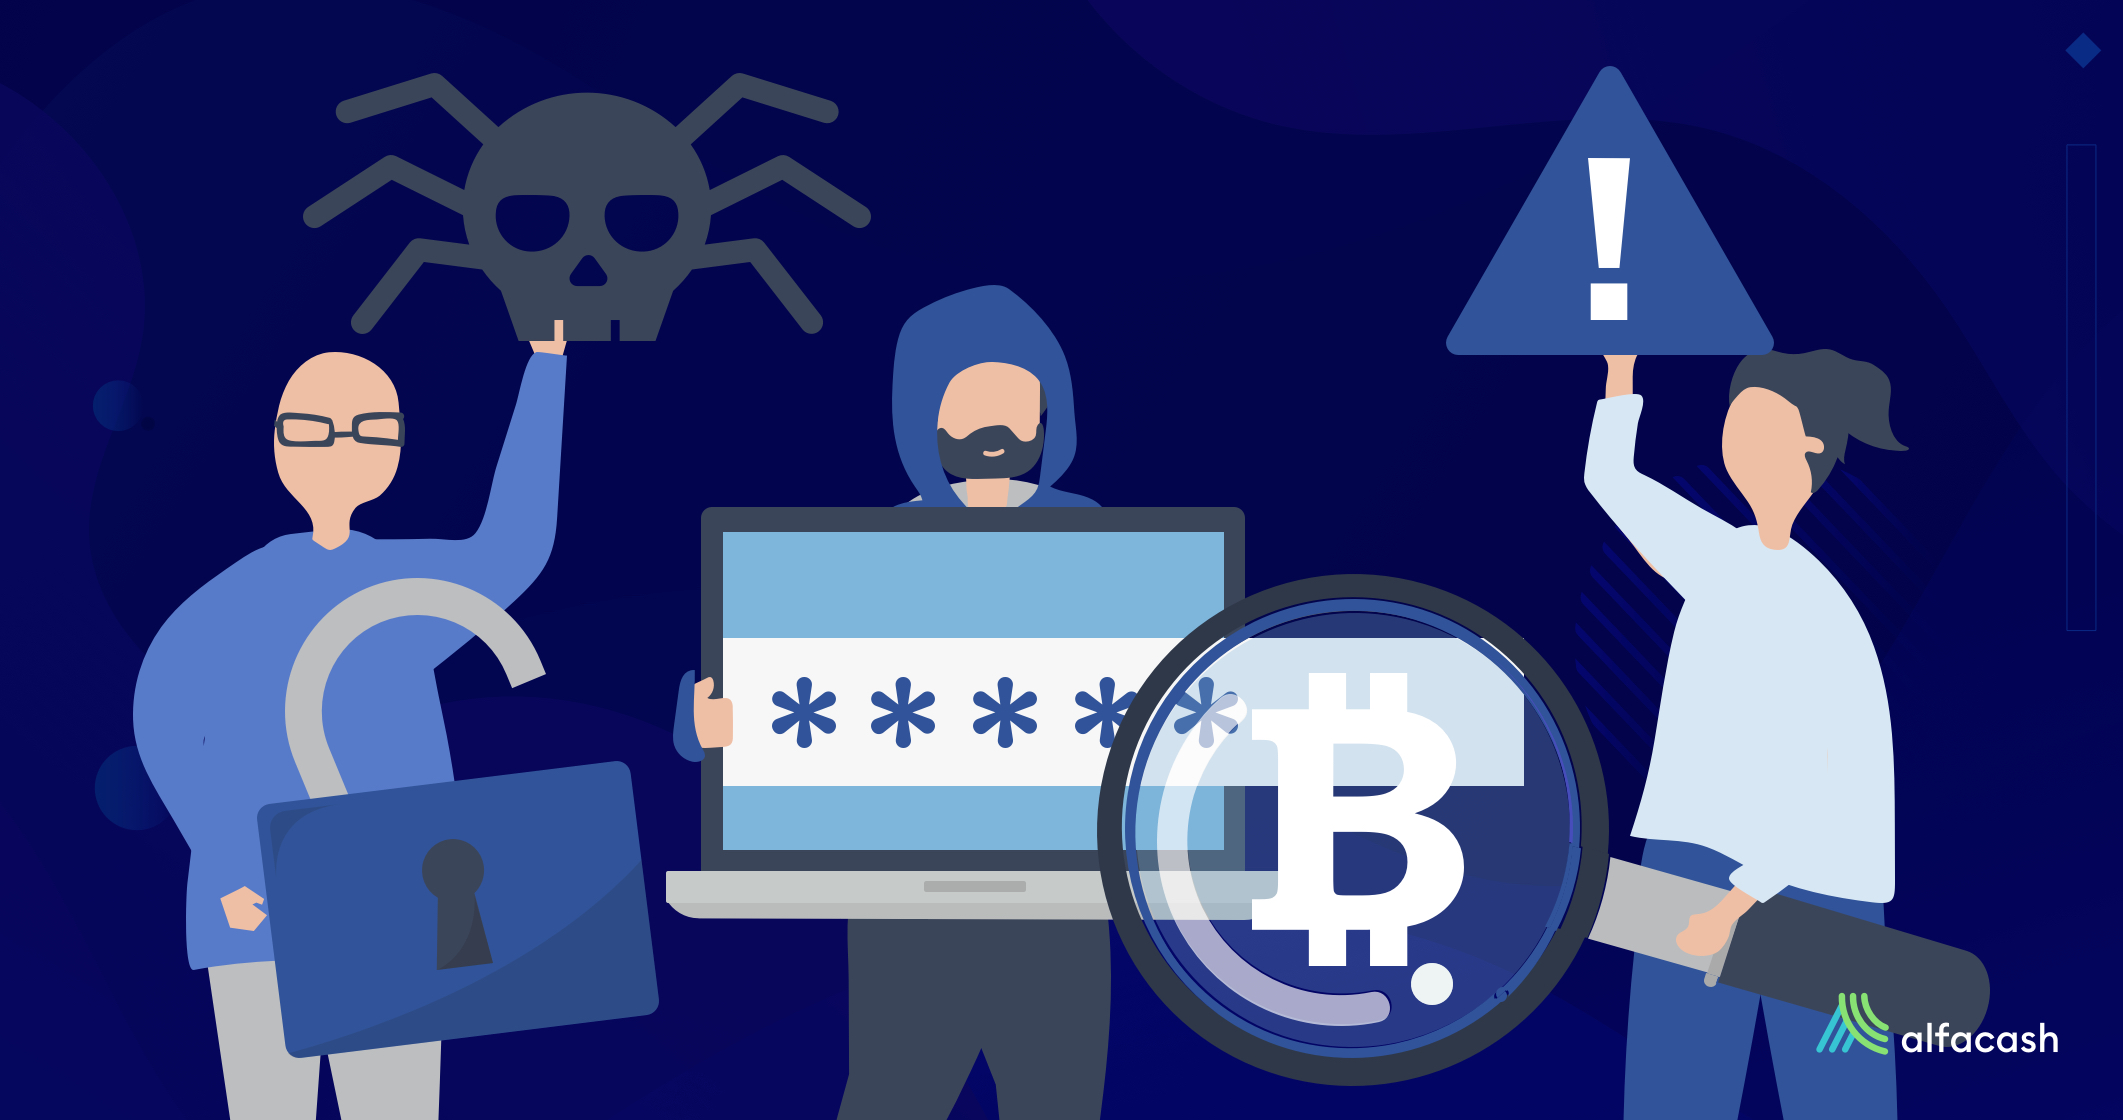 Malware-steal-cryptocurrency-tips